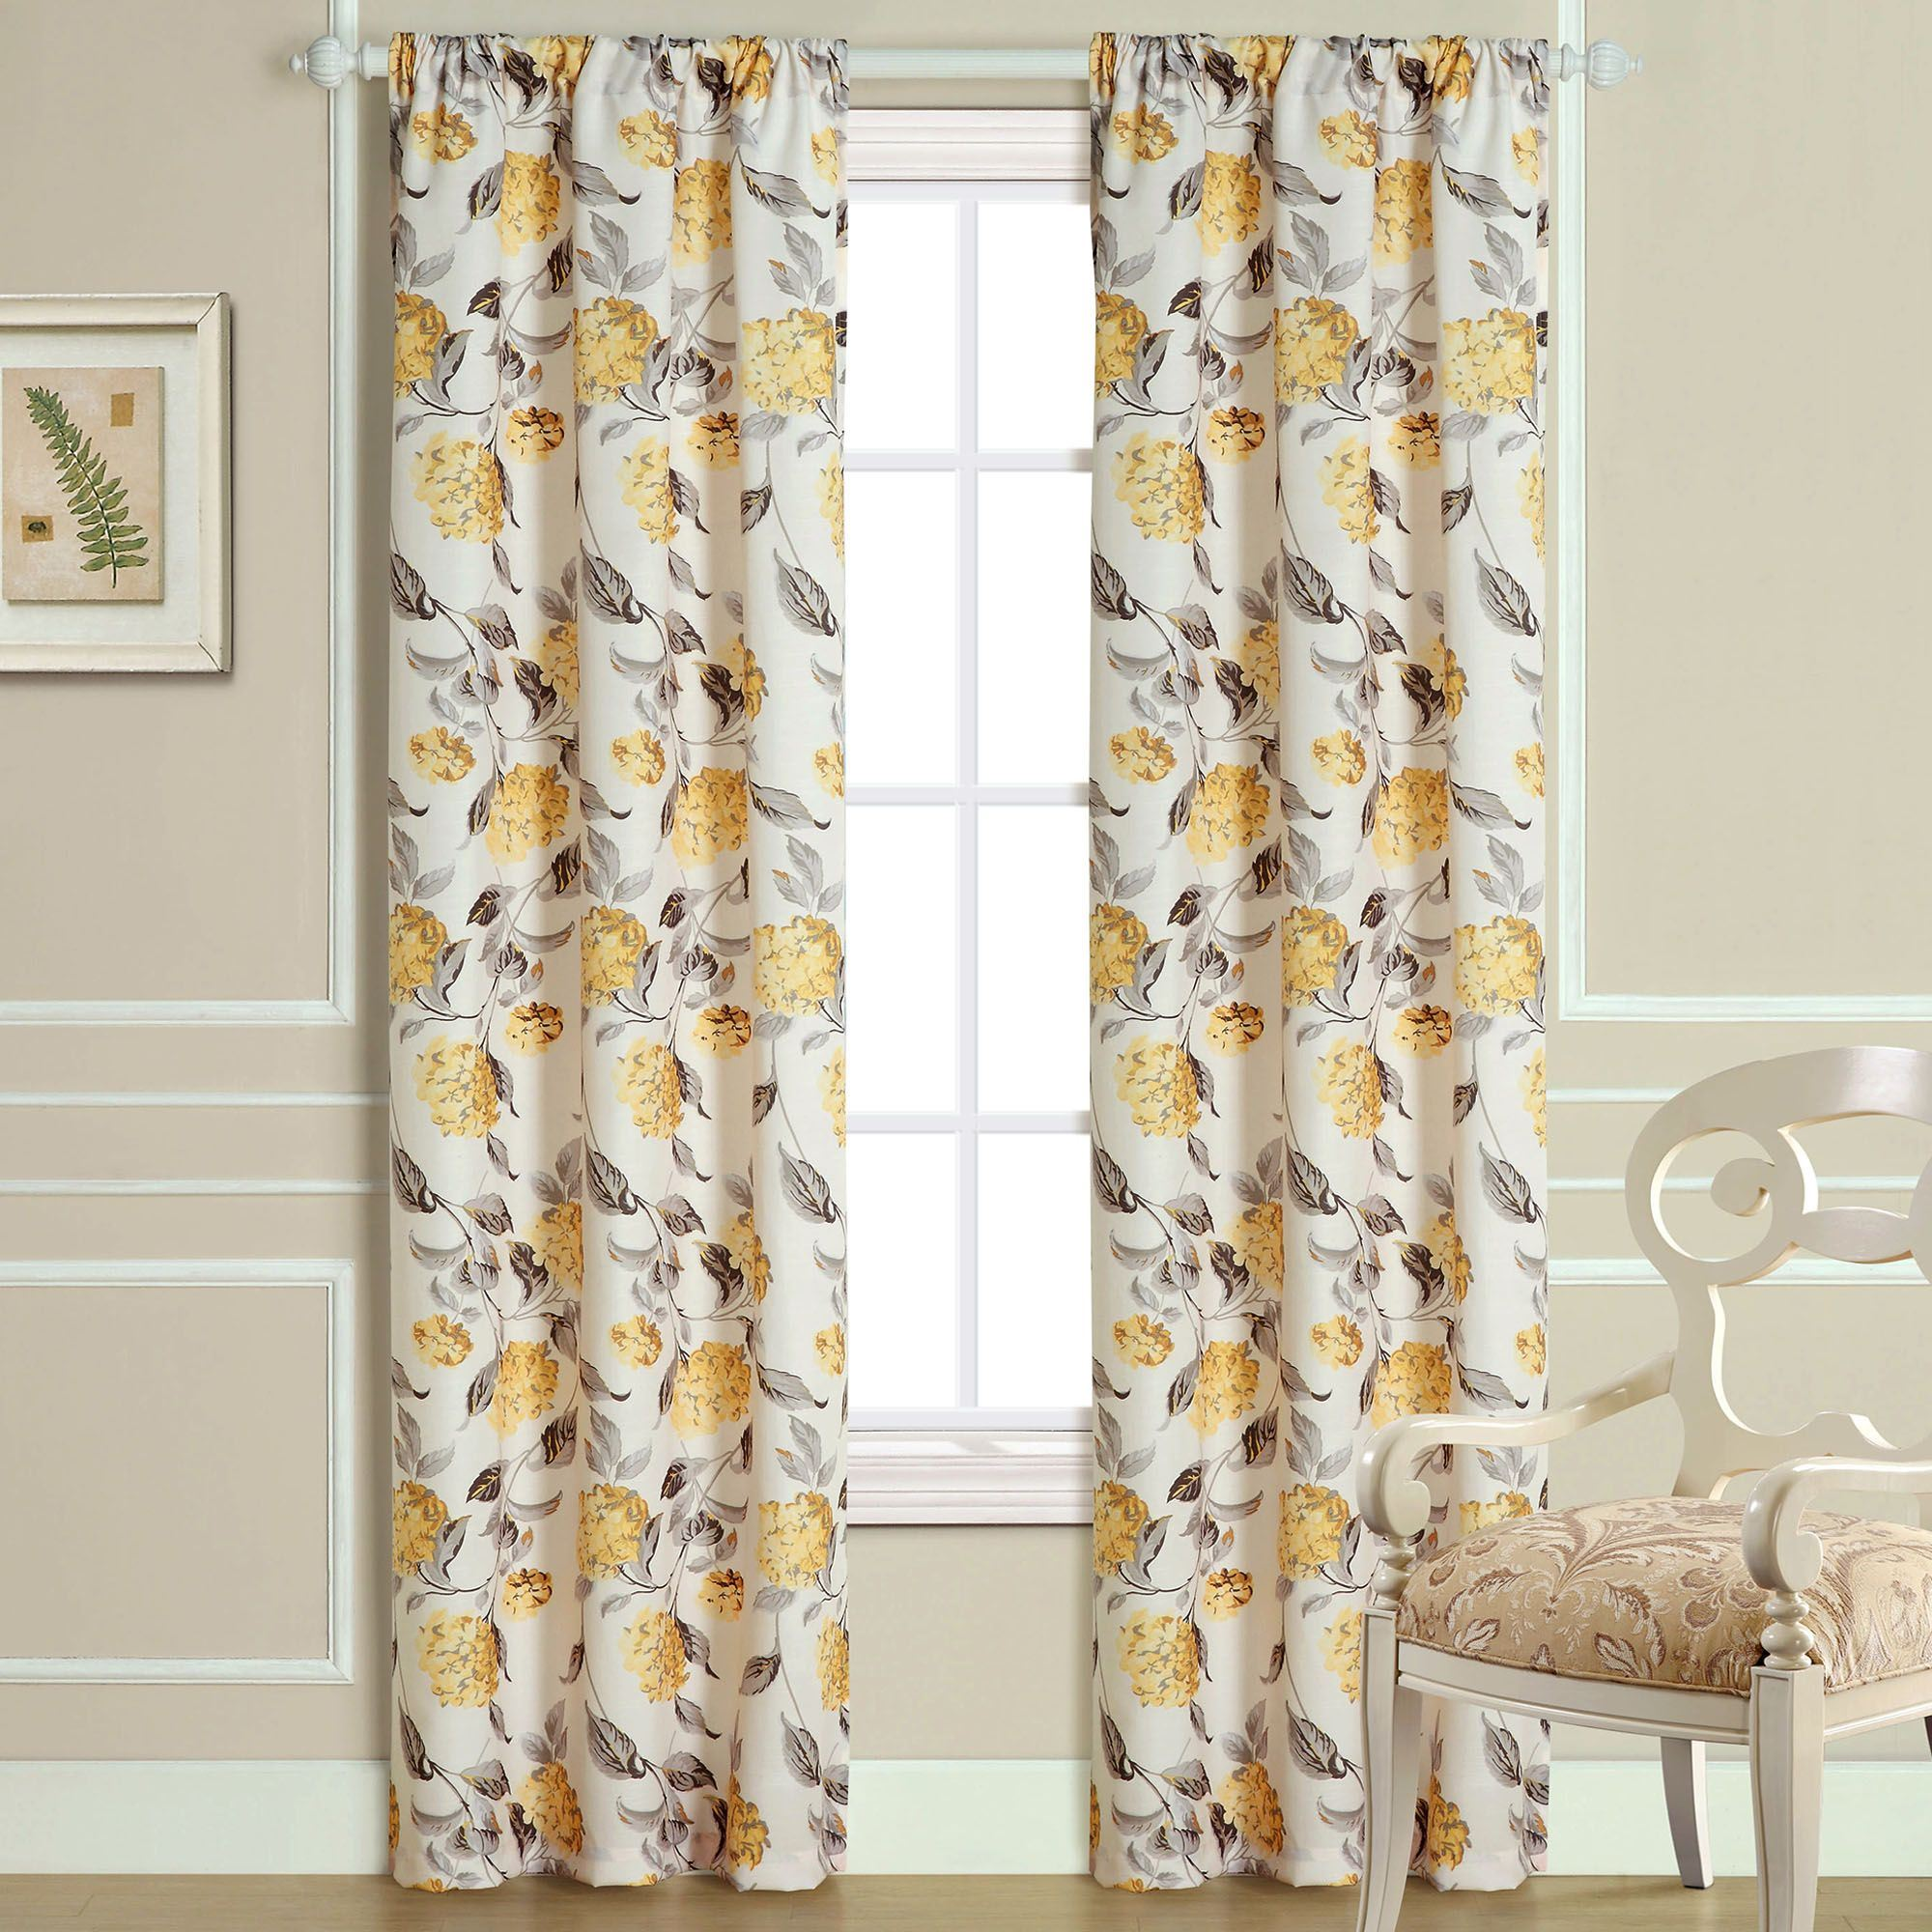 cute floral kids window bedroom sheer yellow printed patterned pastoral custom kitchen mustard curtains blackout cartoon